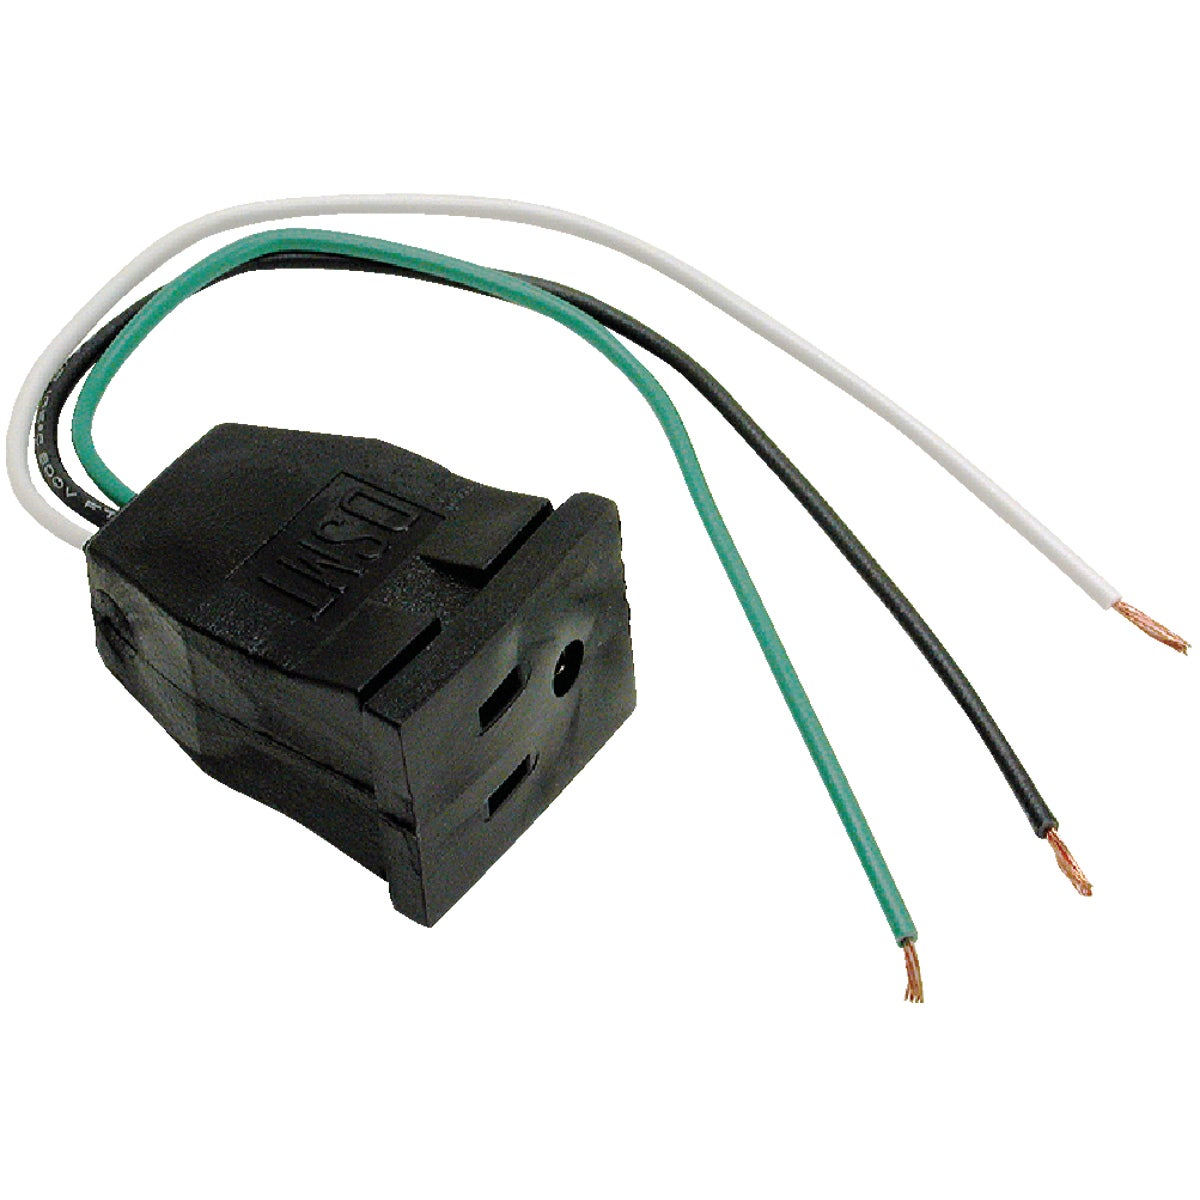 PIGTAIL PUMP RECEPTACLE - 7589 by Dial Manufacturing